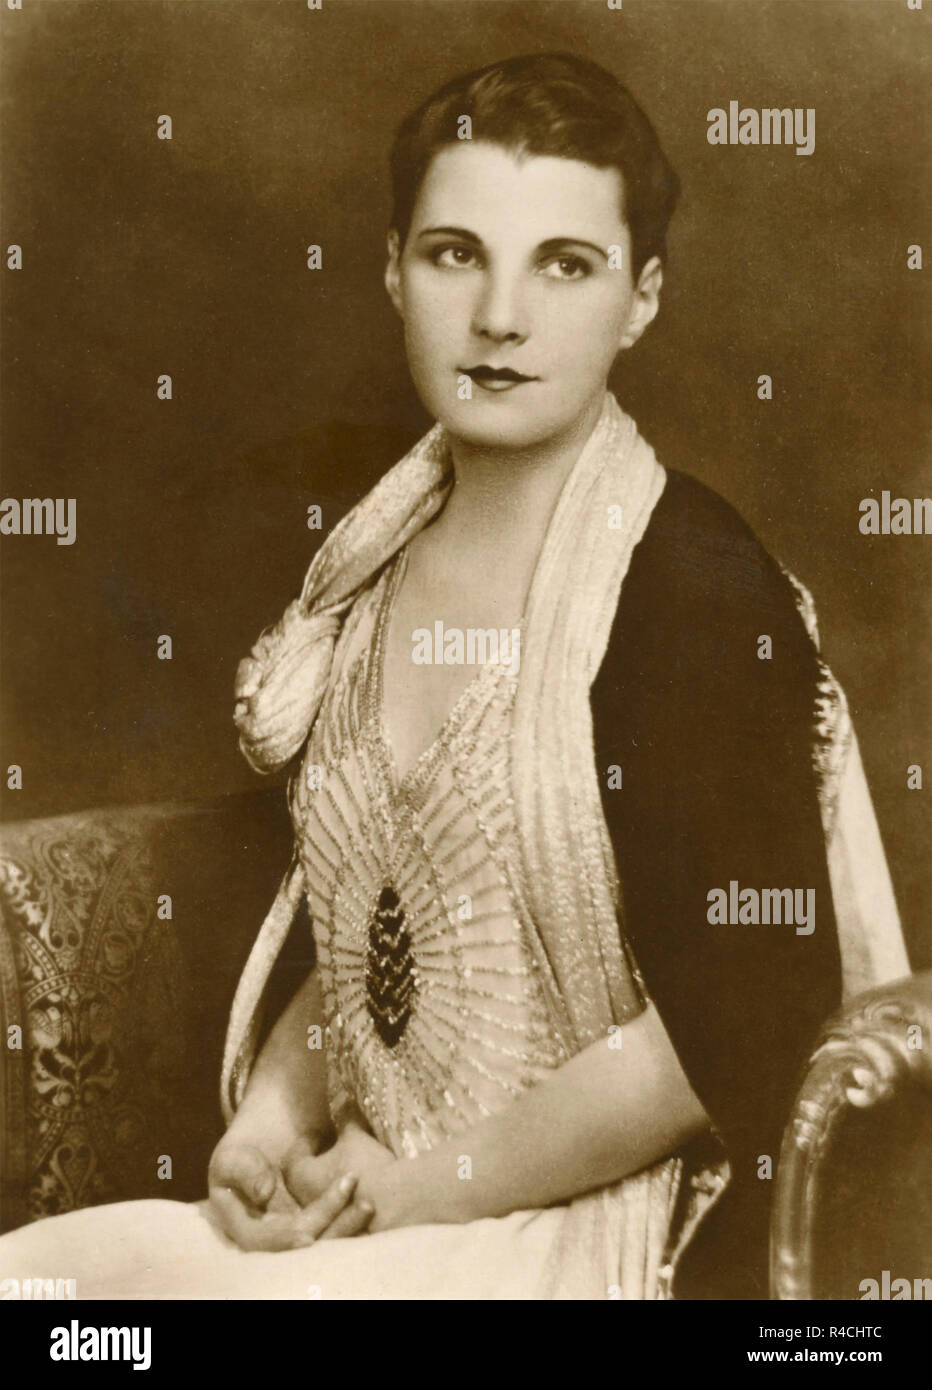 Sheelagh Gilbey images